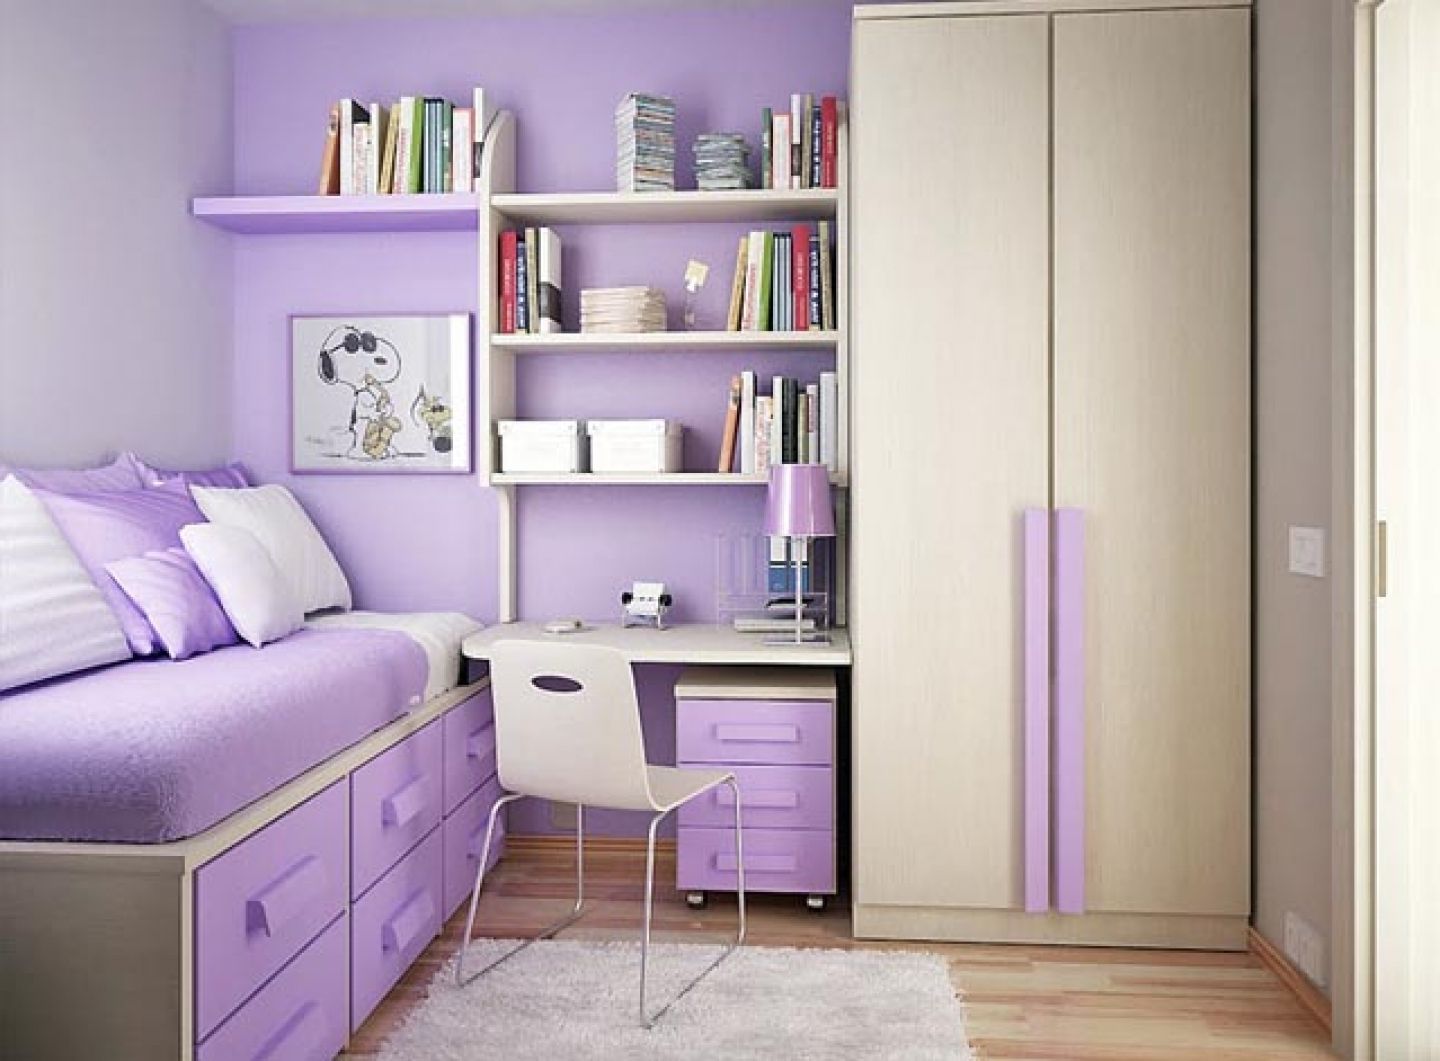 Small Room Design Teenage Girls Bedroom Ideas With For Rooms Tween Decorating Paris Girl Comfy Designs Apppie Org